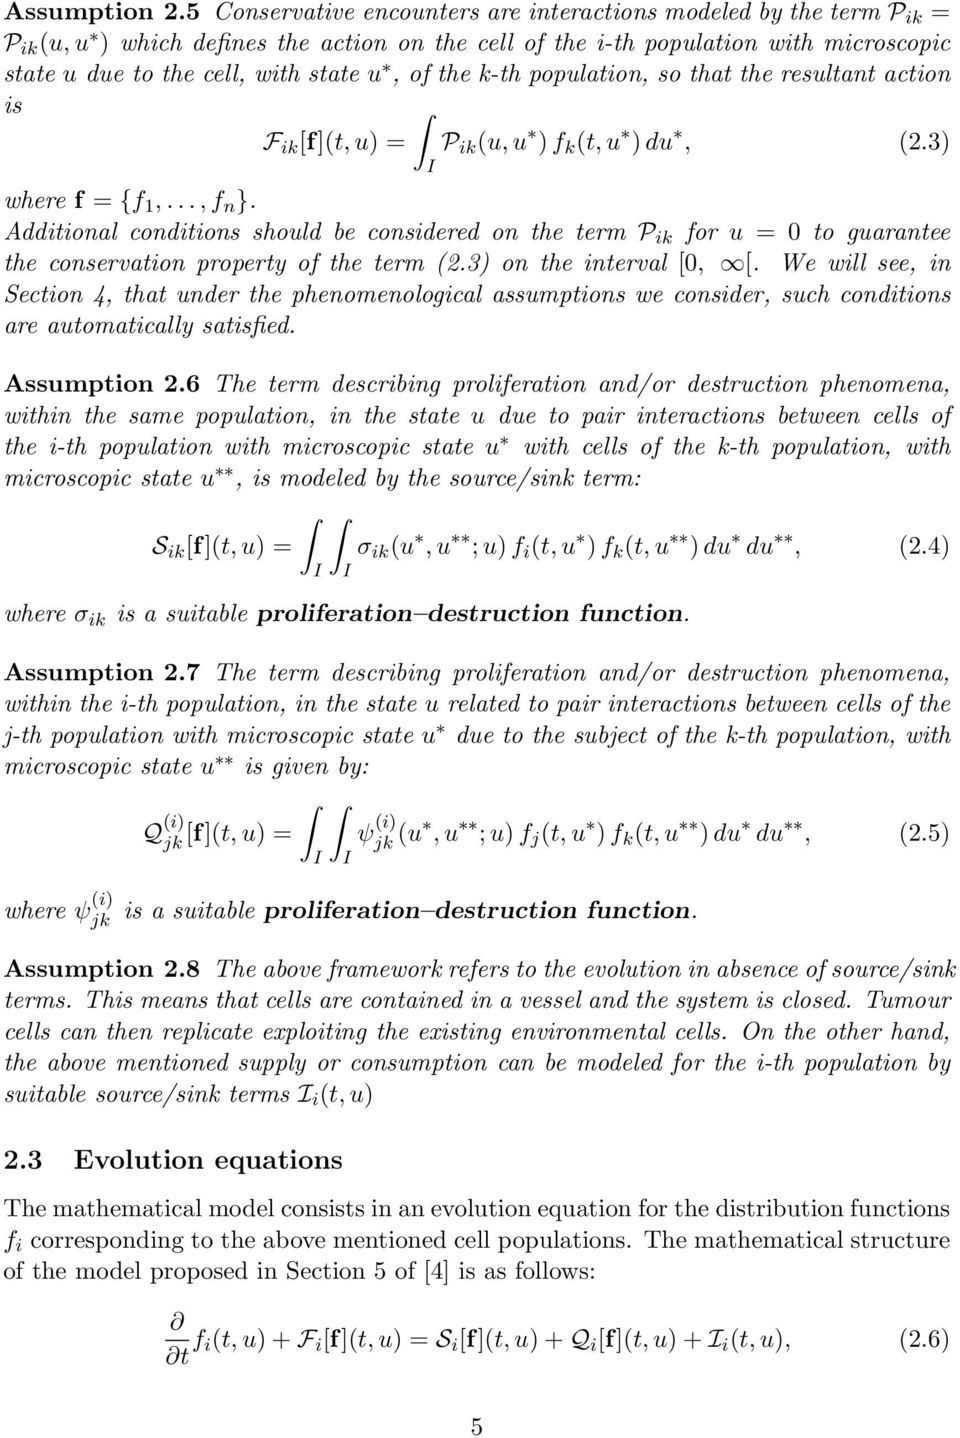 k-th population, so that the resultant action is F ik [f](t, u = P ik (u, u f k (t, u u, (2.3 I where f = {f 1,..., f n }.